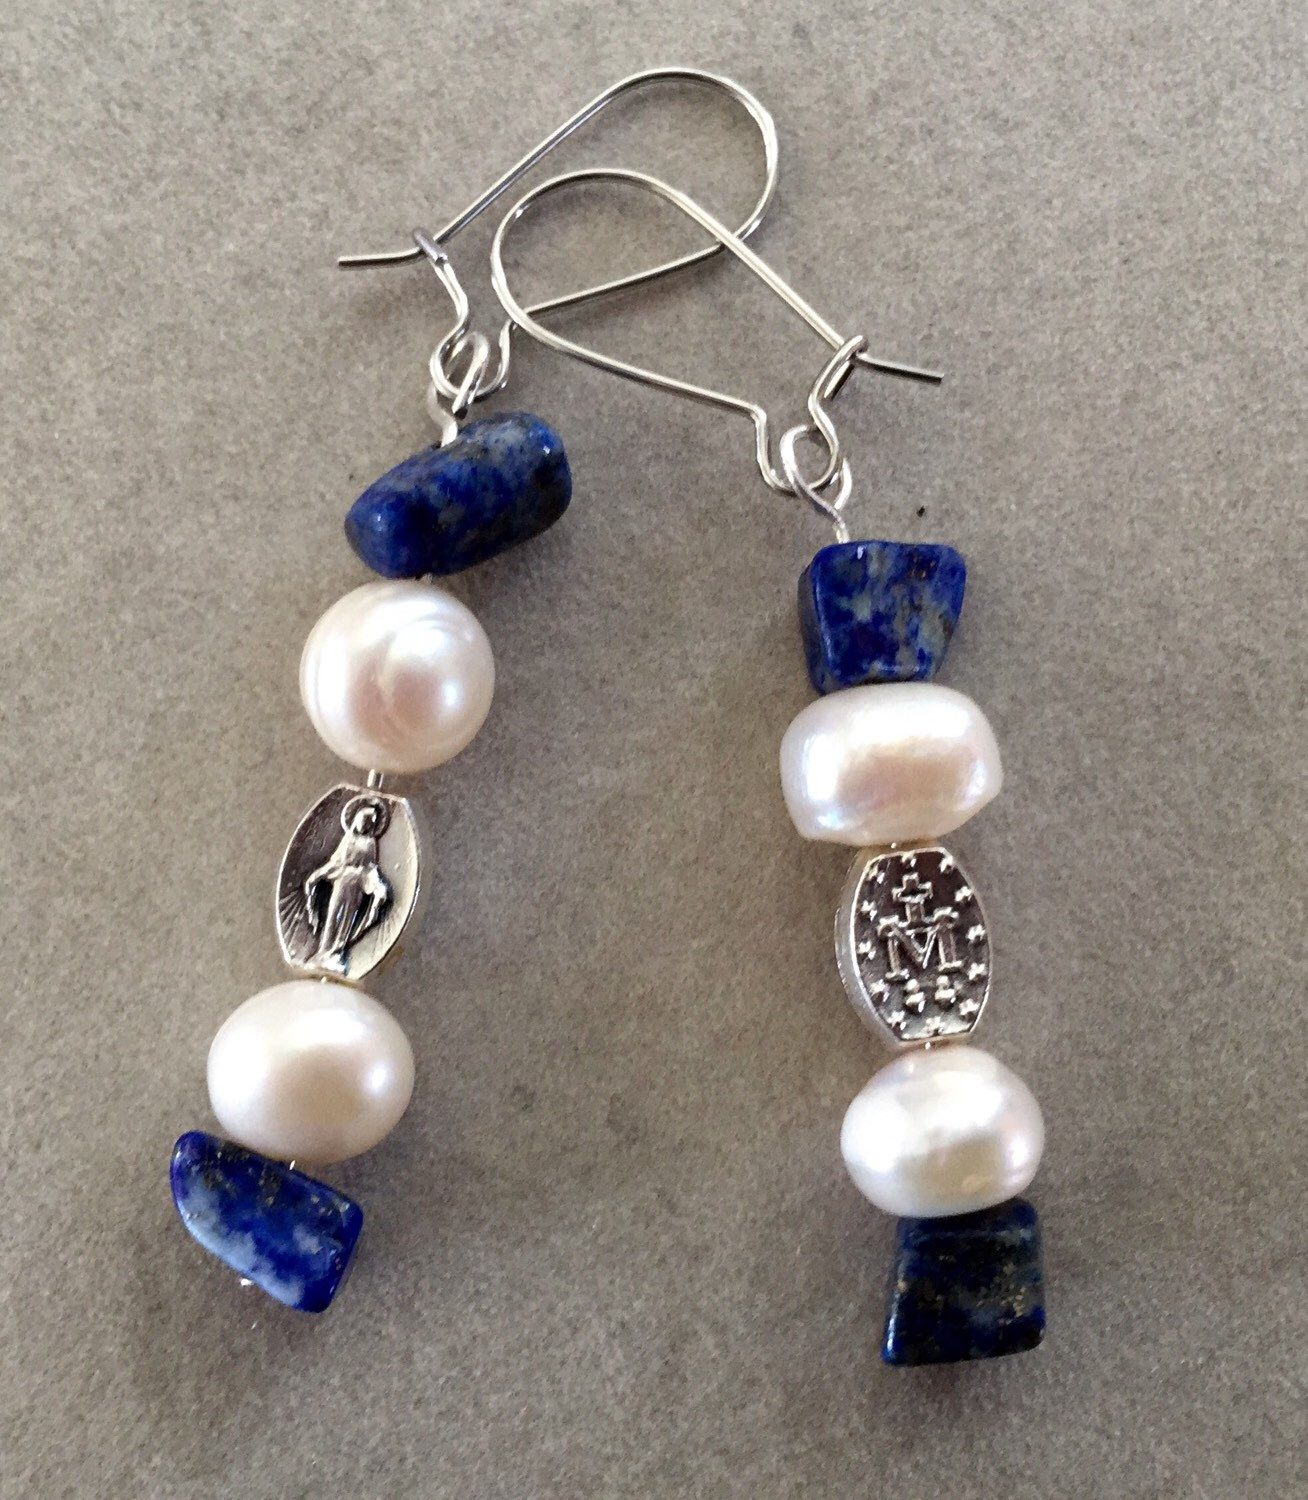 Pearl and Lapis Miraculous Medal Earrings by AveMariaFaithcrafts on Etsy https://www.etsy.com/listing/260759217/pearl-and-lapis-miraculous-medal